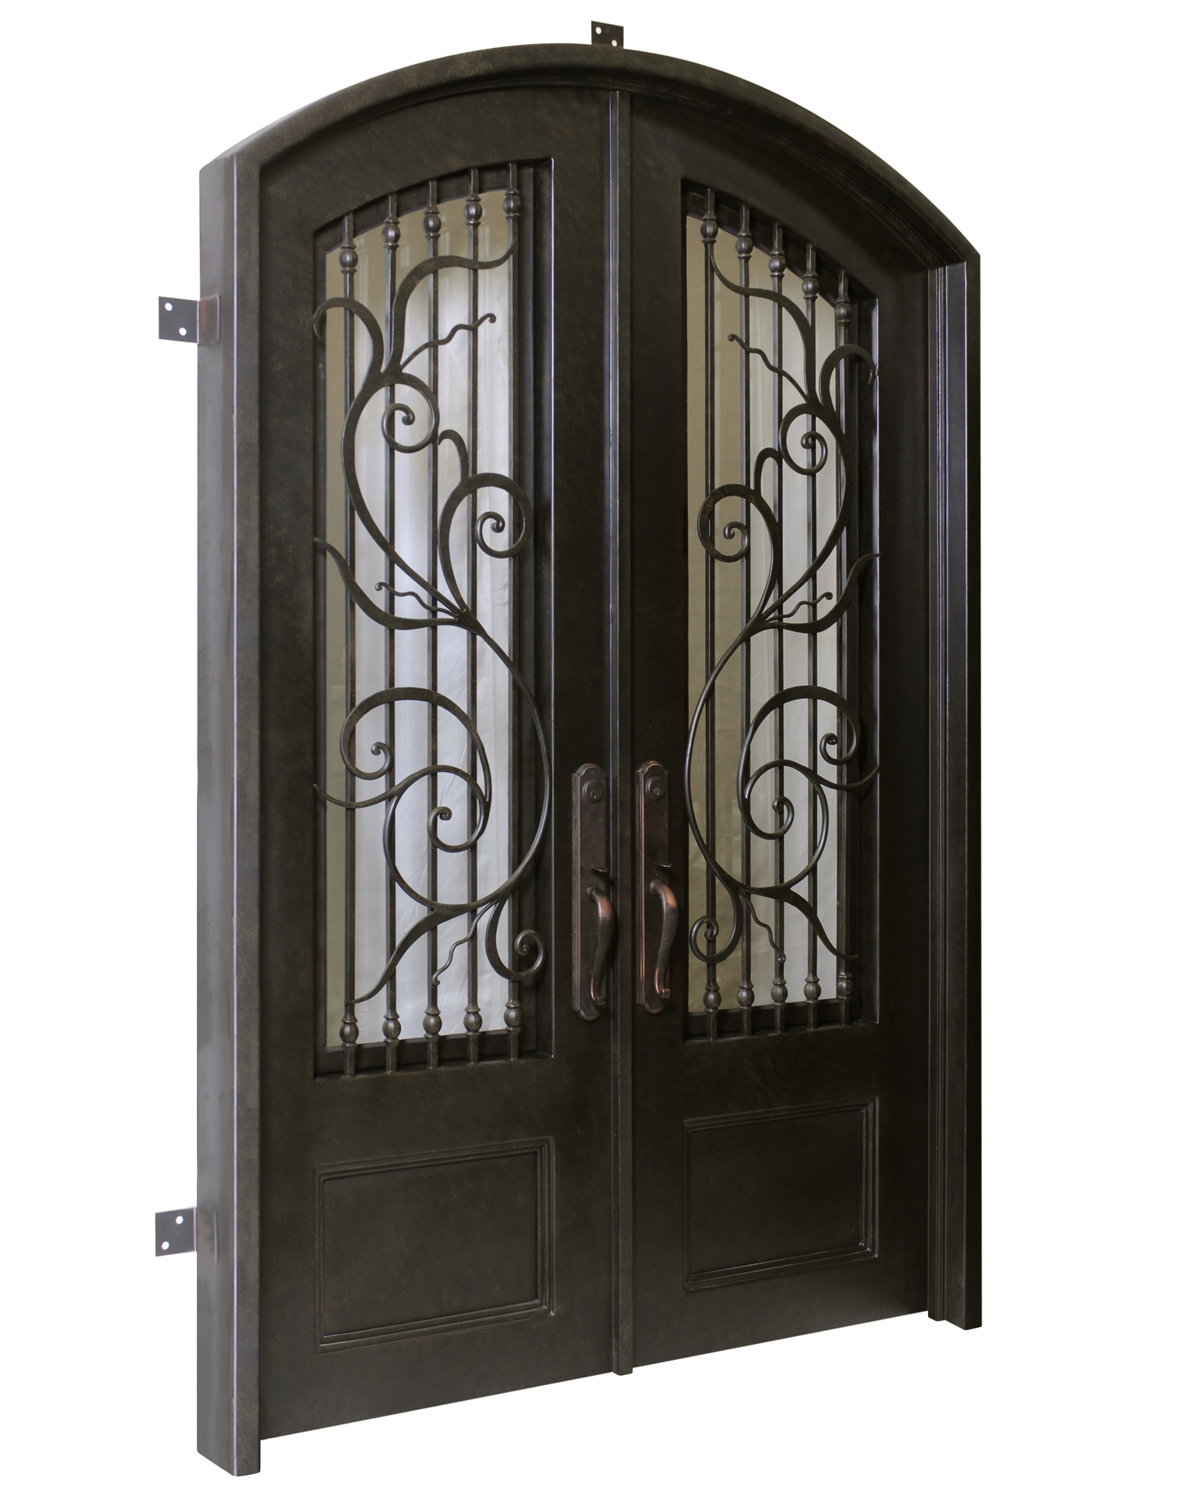 Florence handcrafted wrought iron door